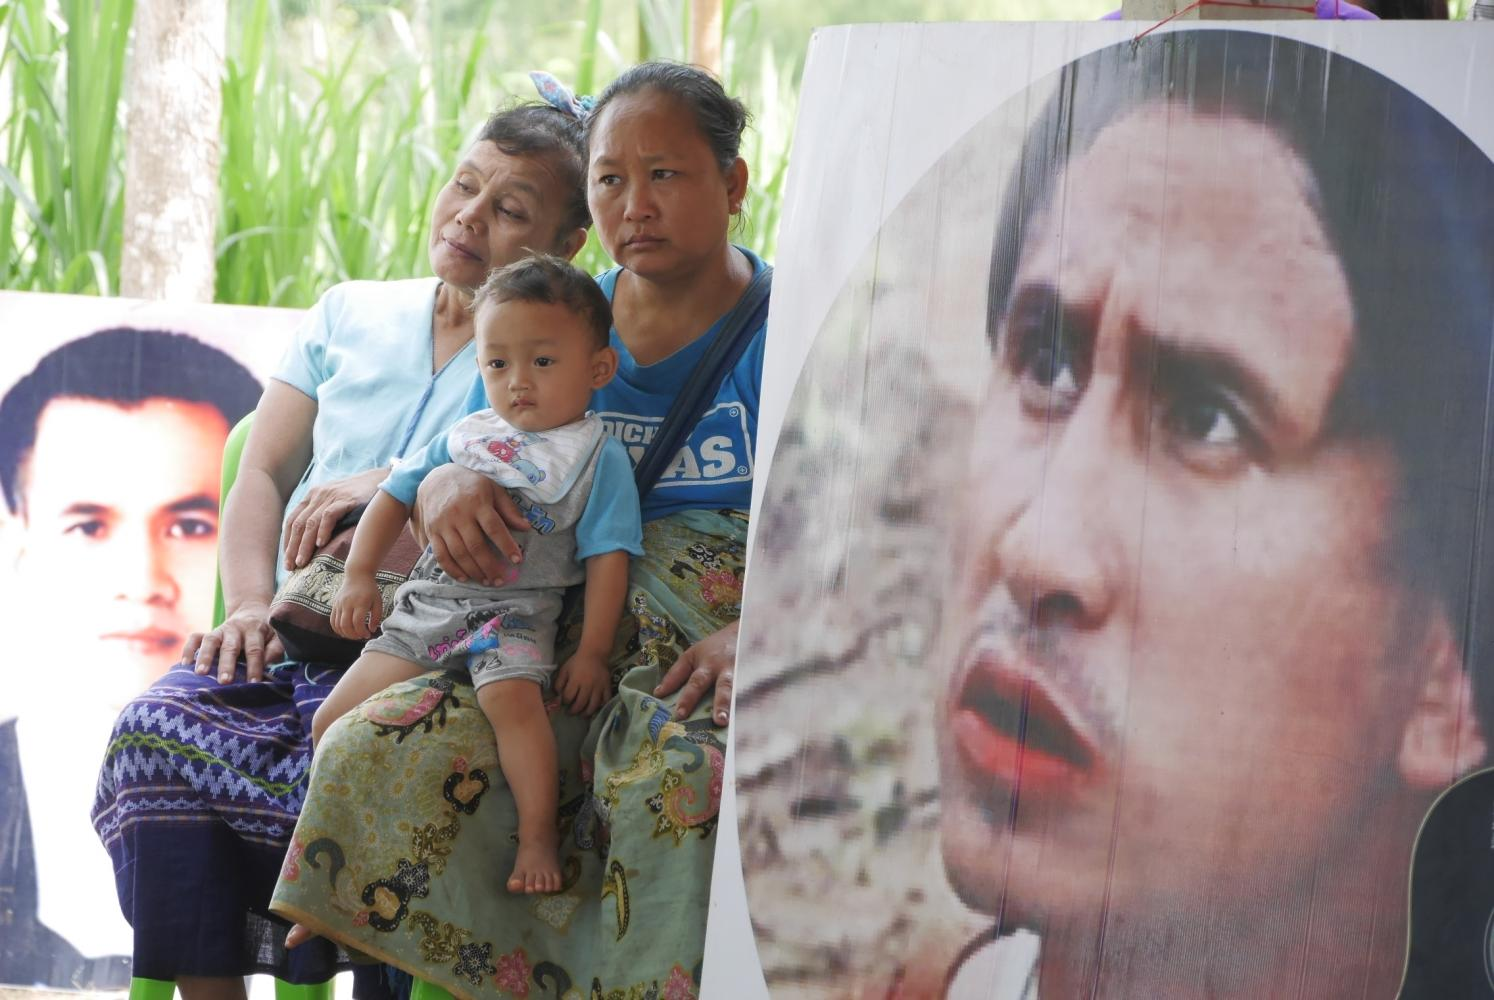 The photos of the late human rights defenders Tatkamon Ob-om (left) and Porlajee 'Billy' Rakchongcharoen (right) were exhibited during a ceremony in memory of their fight to protect the rights of indigenous Karen forest dwellers in Kaeng Krachan forest.Photo by Sanitsuda Ekachai